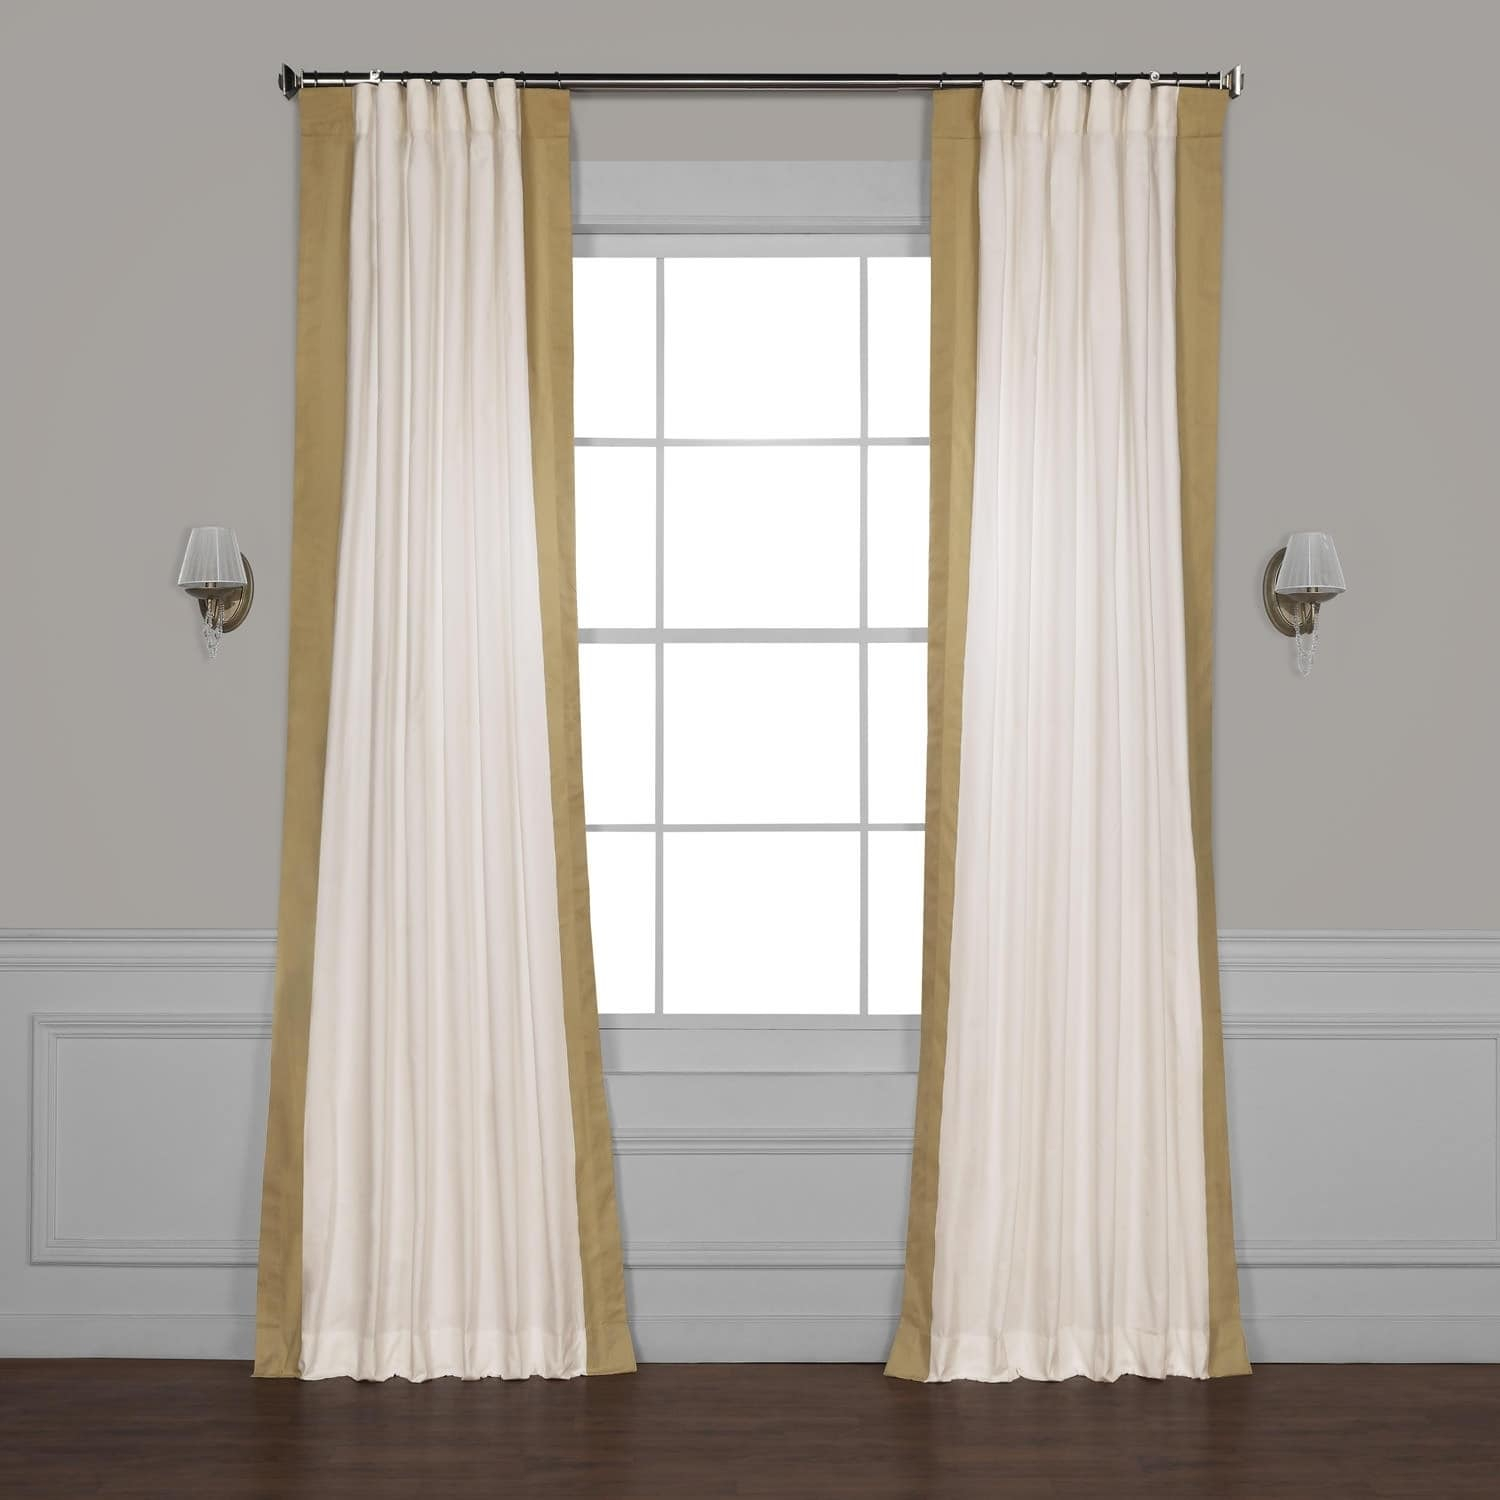 Exclusive Fabrics Vertical Colorblock Panama Curtain With Regard To Vertical Colorblock Panama Curtains (View 8 of 30)